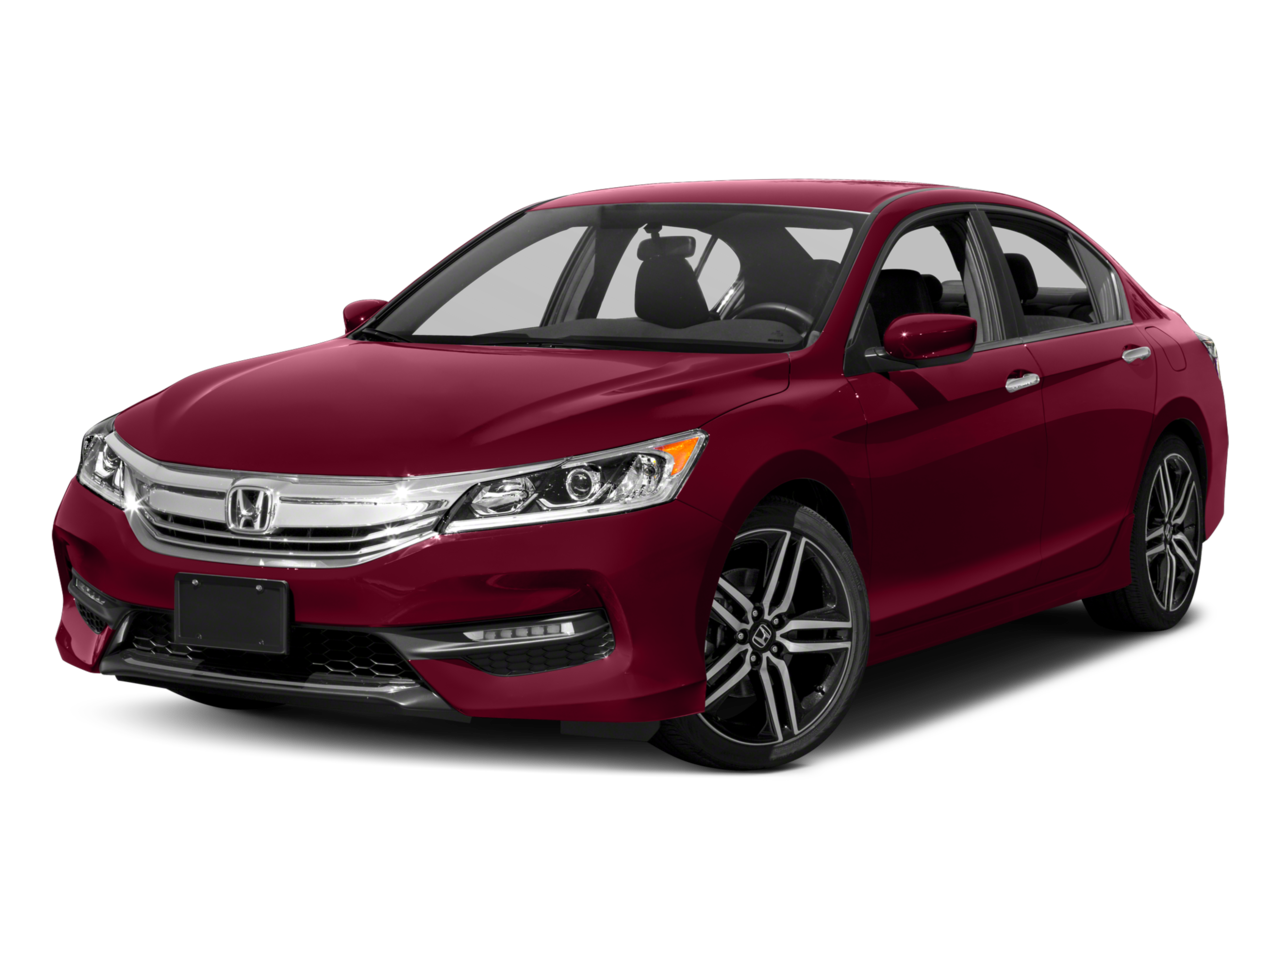 2017 honda accord sedan buying a new car springfield mo. Black Bedroom Furniture Sets. Home Design Ideas